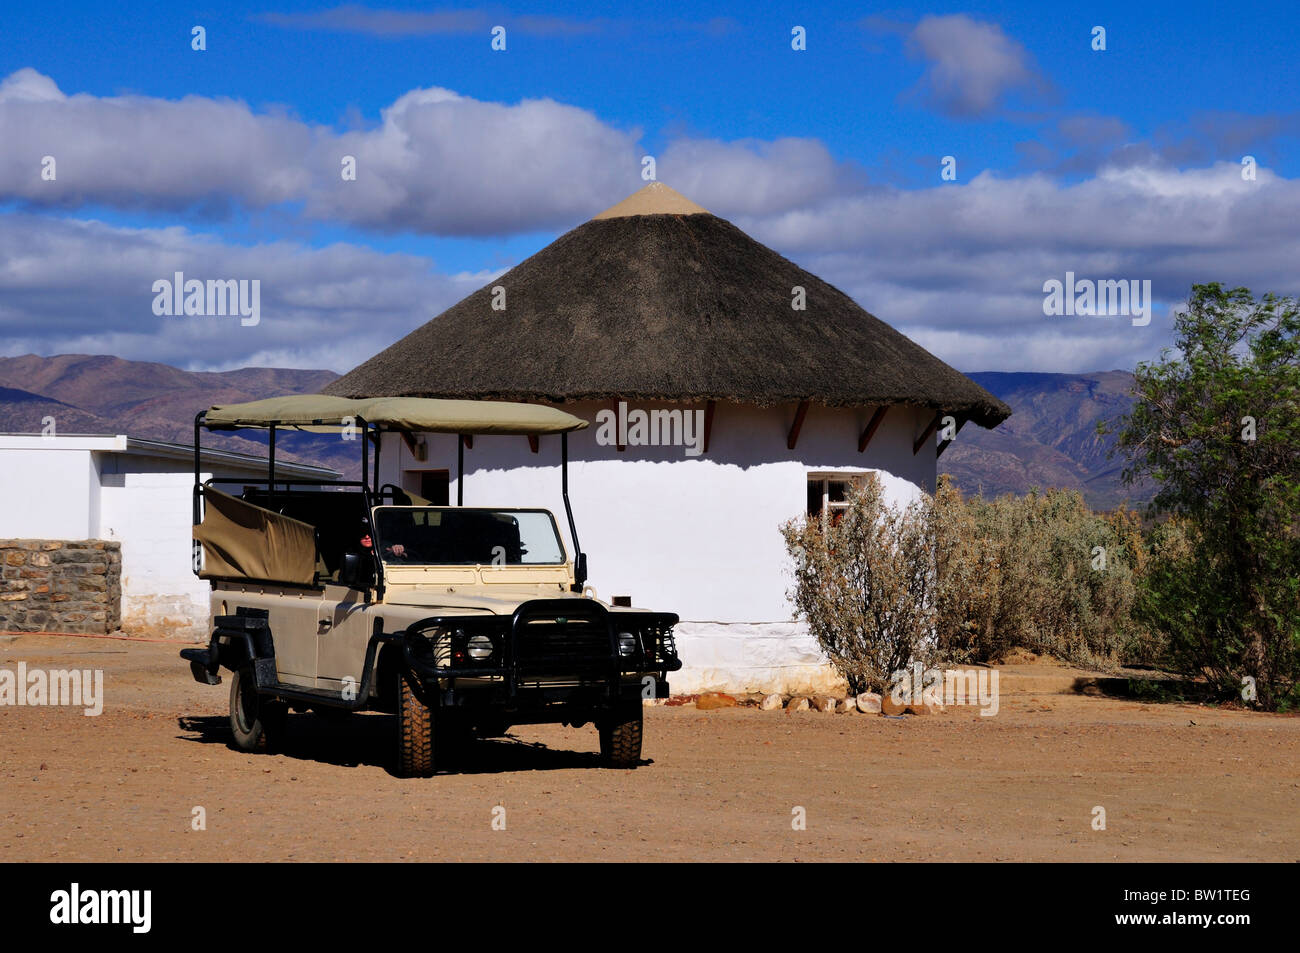 A Safari jeep parked in front of an African style hut. South Africa. - Stock Image